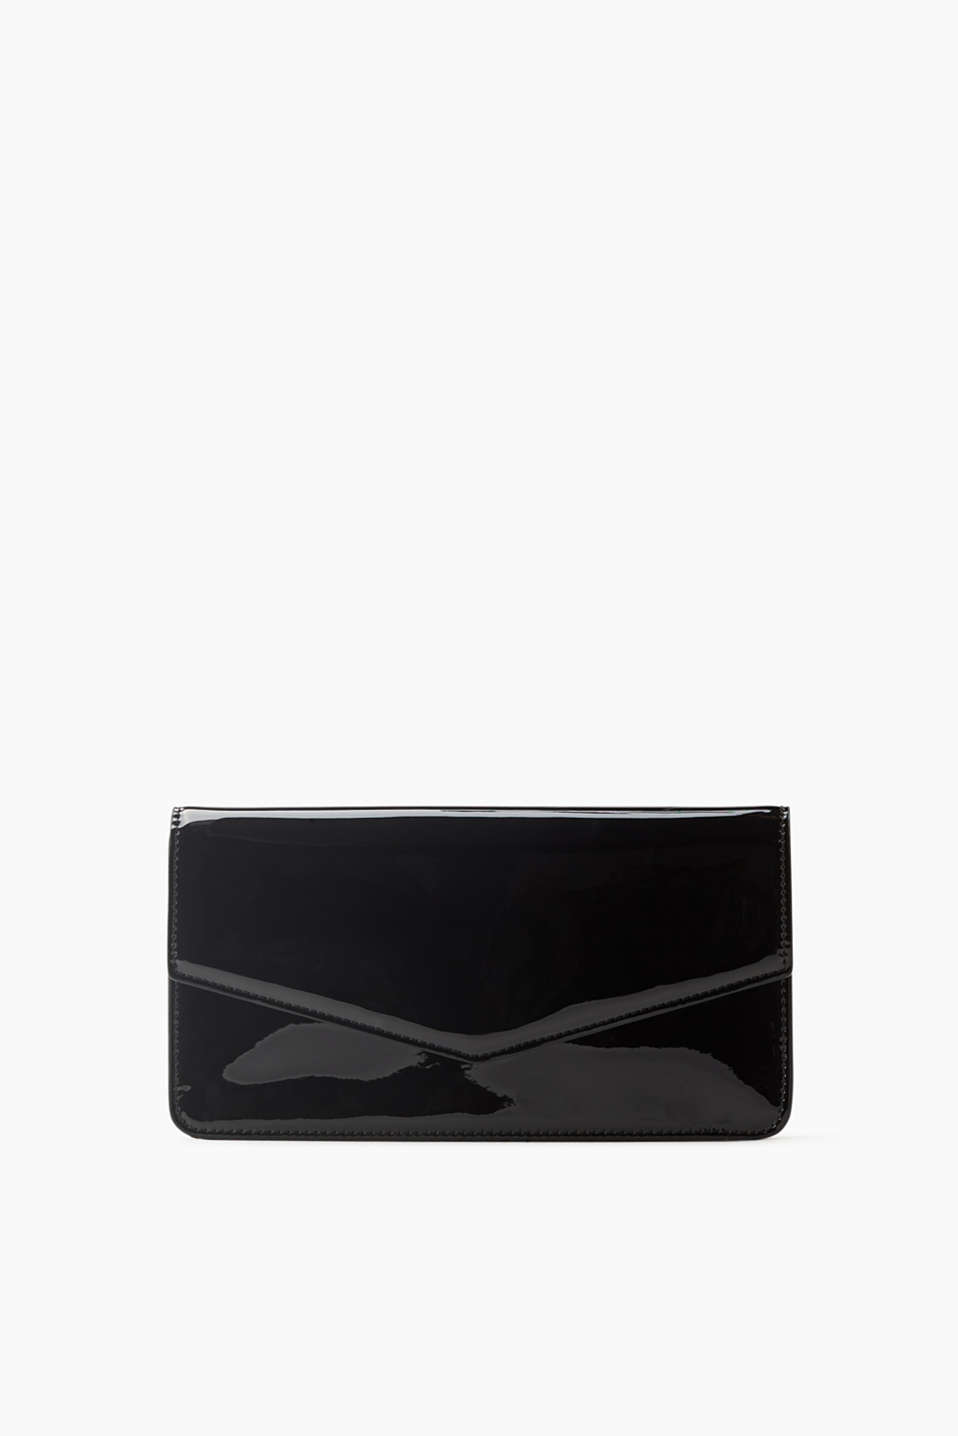 Timeless and elegant! Clutch in a high-shine patent leather look